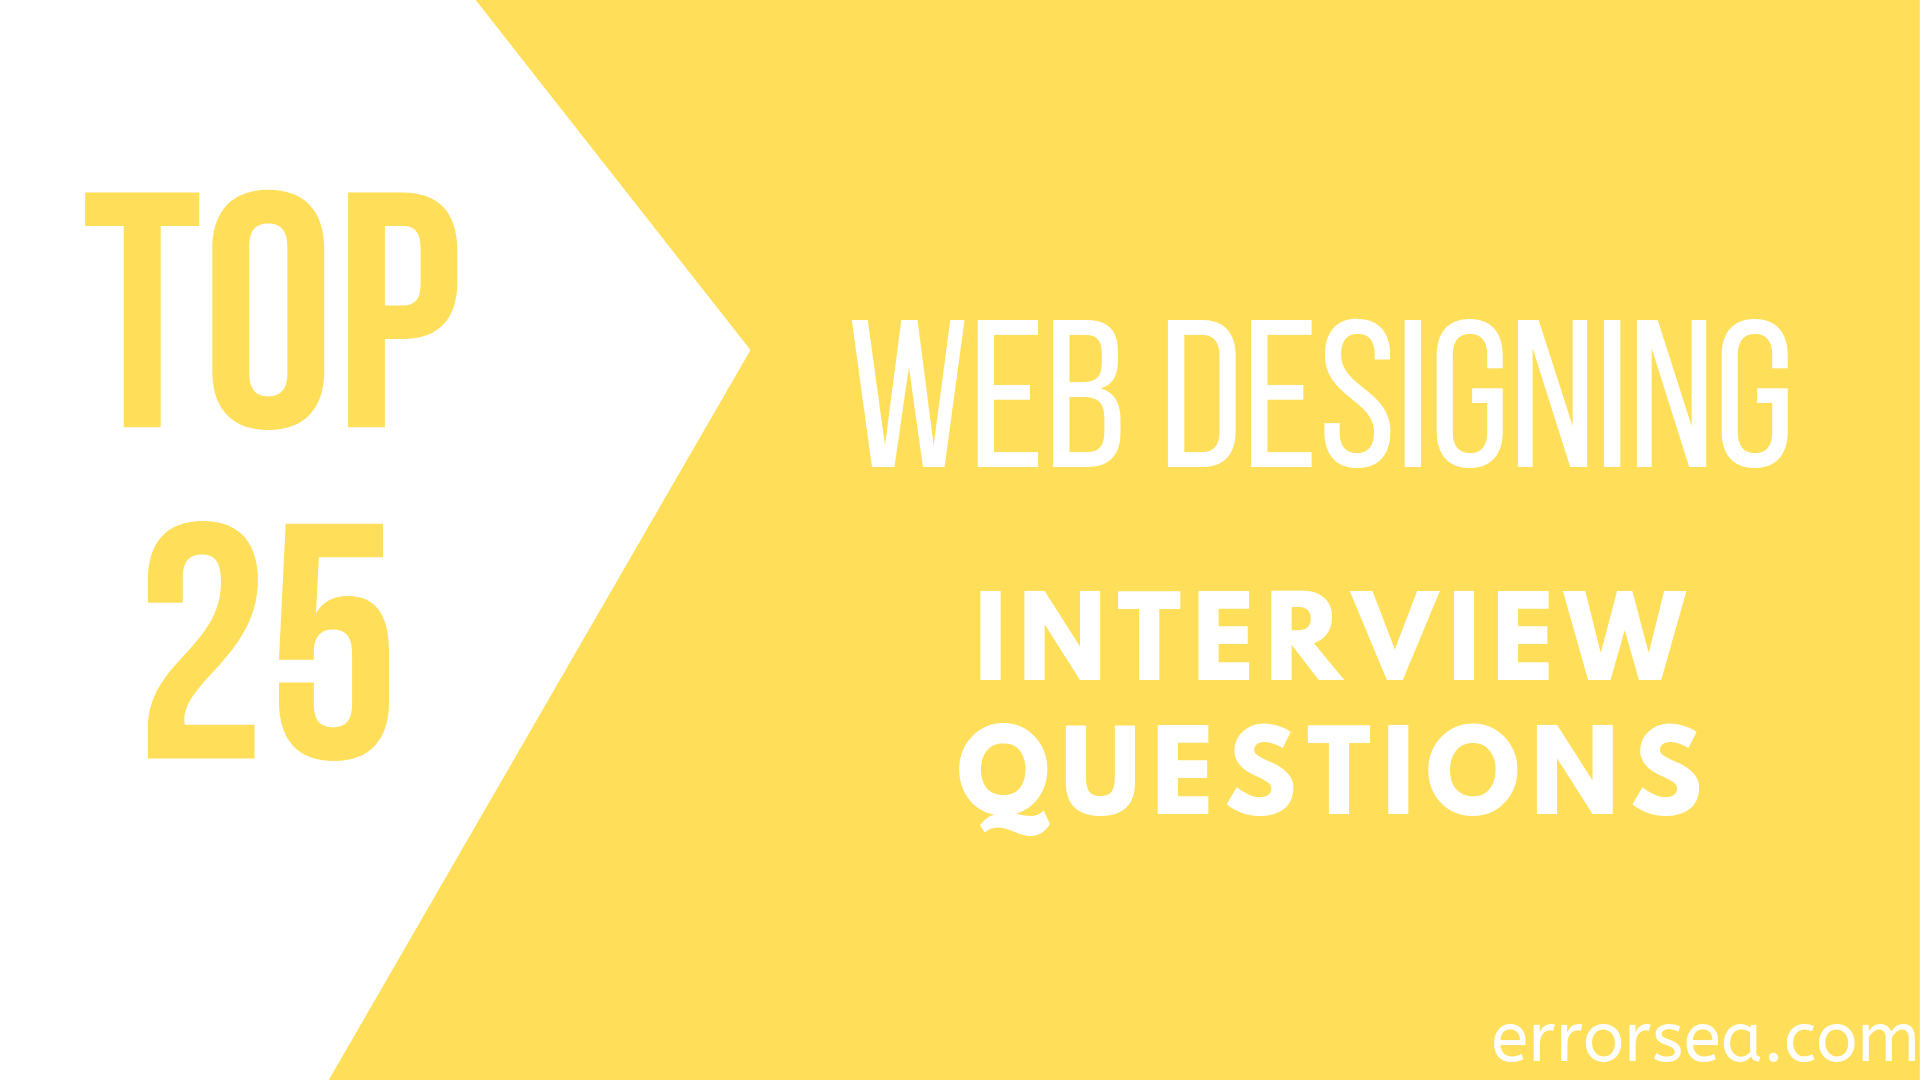 Top 25 Web Designing Interview Questions